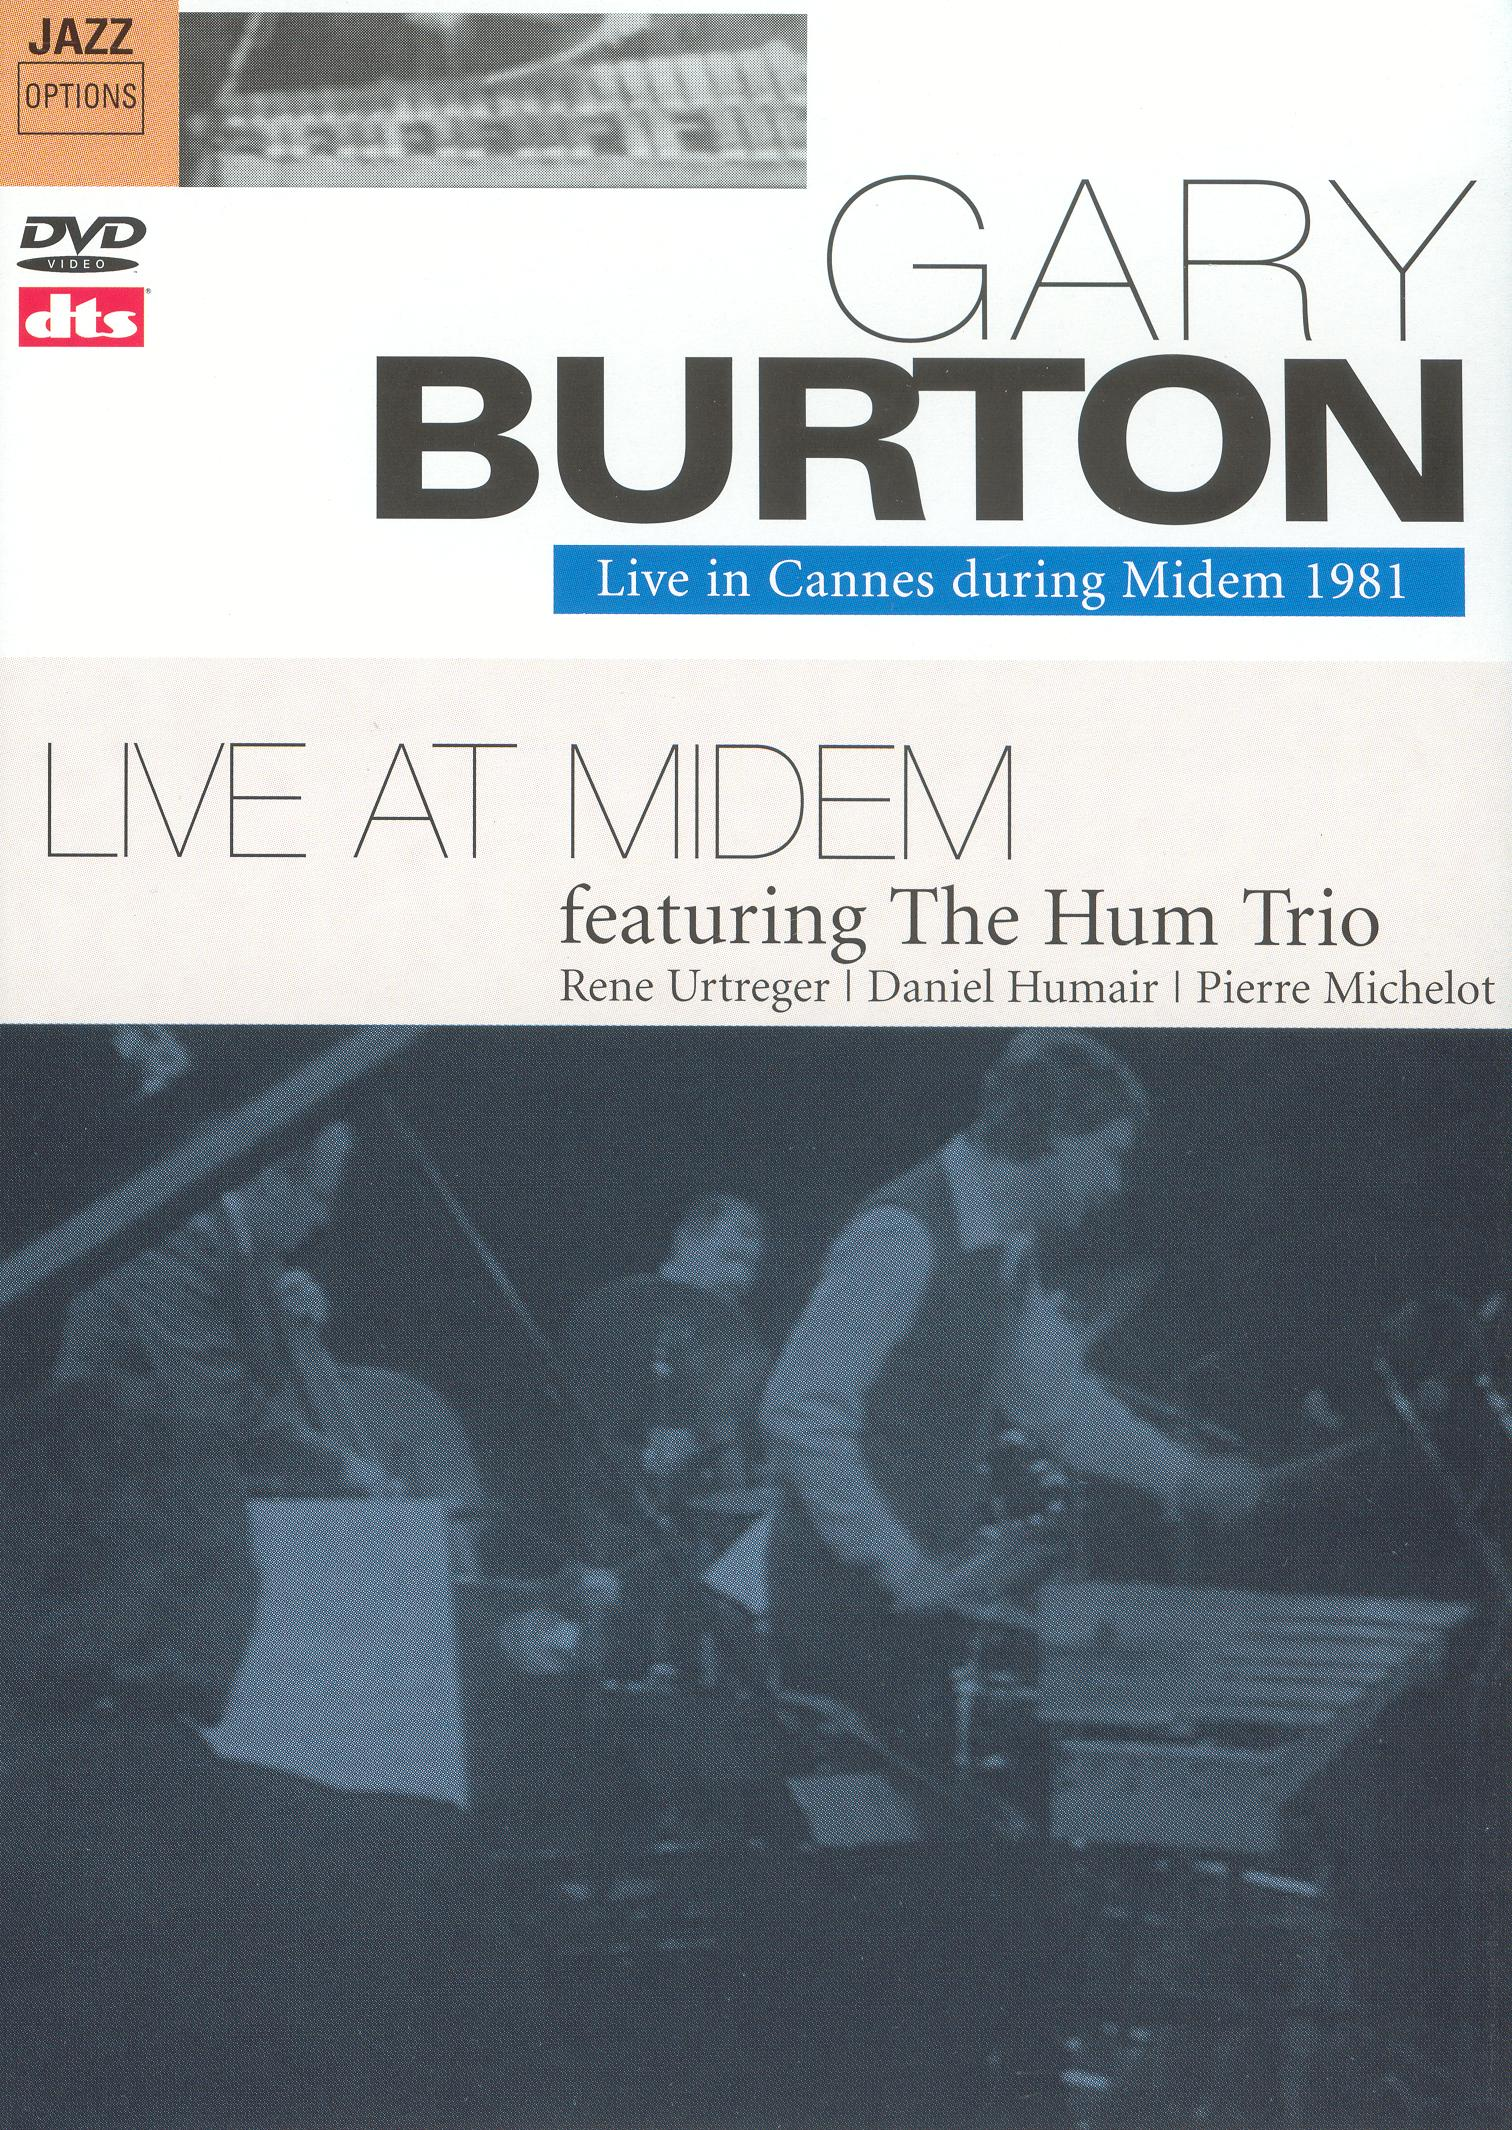 Gary Burton: Live In Cannes During Midem 1981